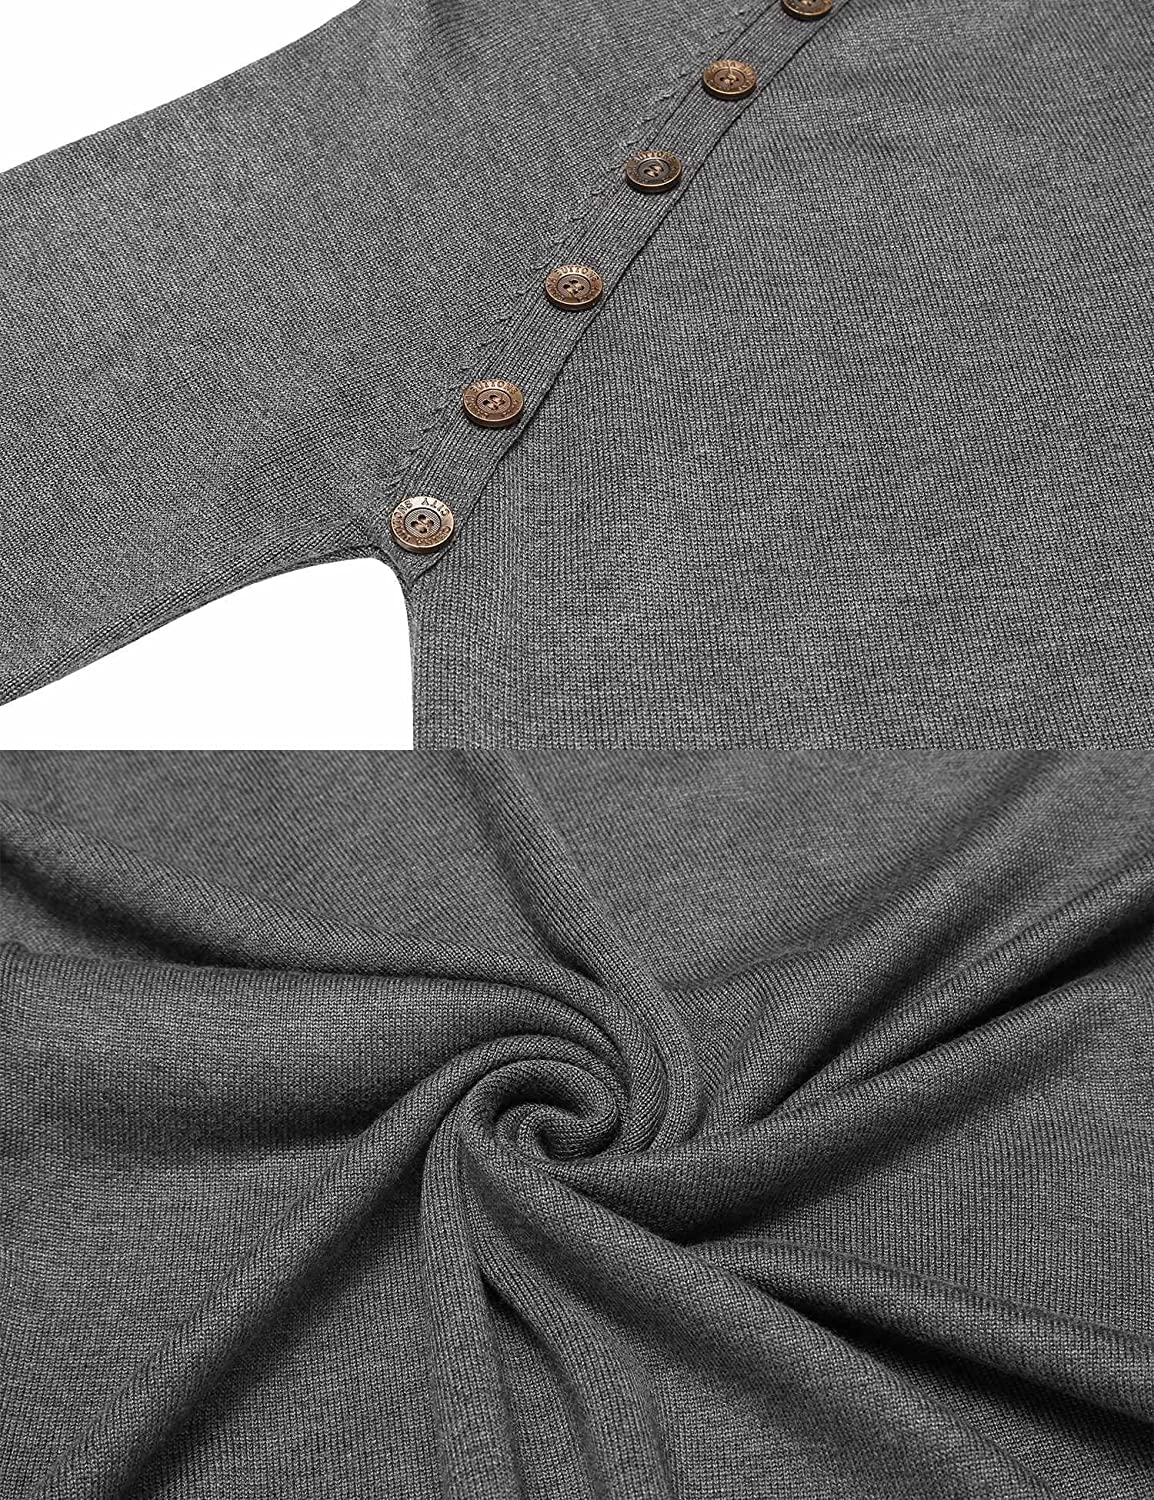 COOFANDY Mens Knitted Ribbed Turtleneck Pullover Sweaters with Buttons